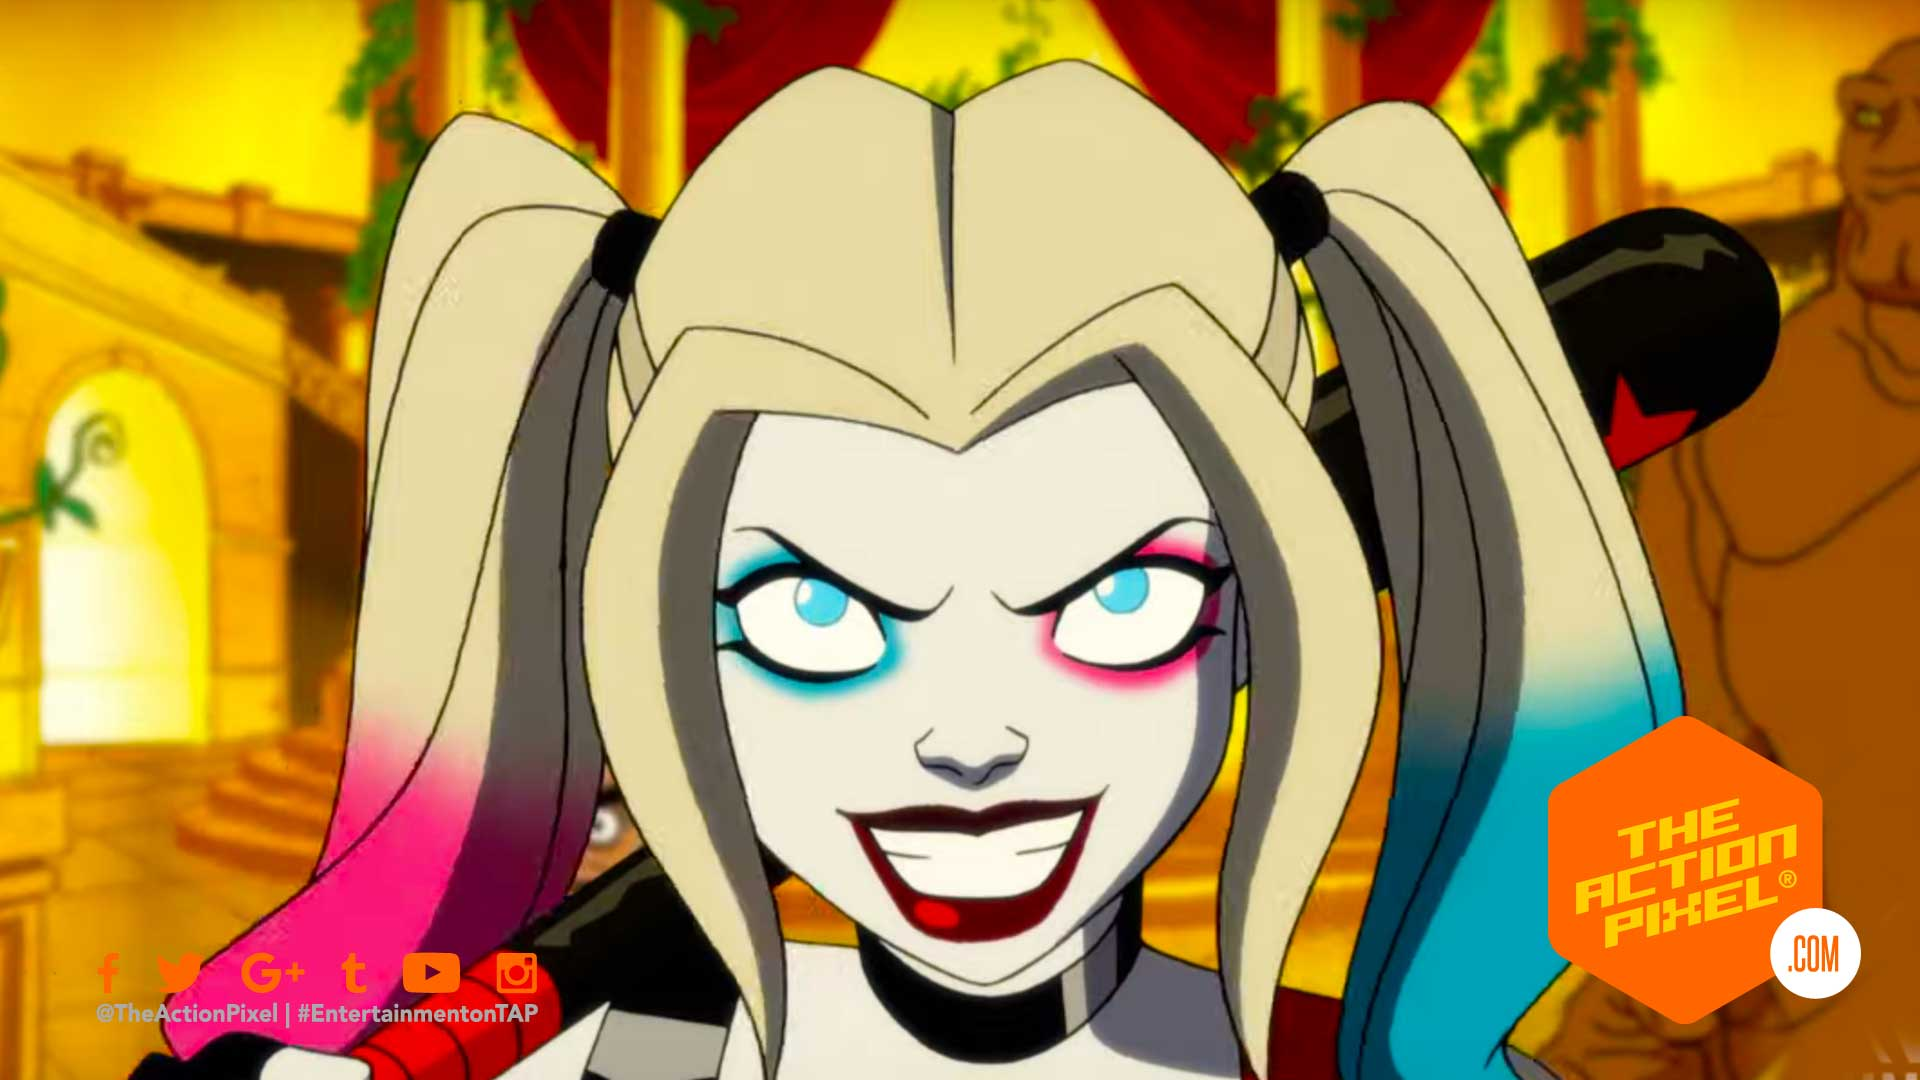 harley quinn, dc universe, dc's harley quinn, harley quinn animation series, harley quinn preview, entertainment on tap, the action pixel, dc comics, featured